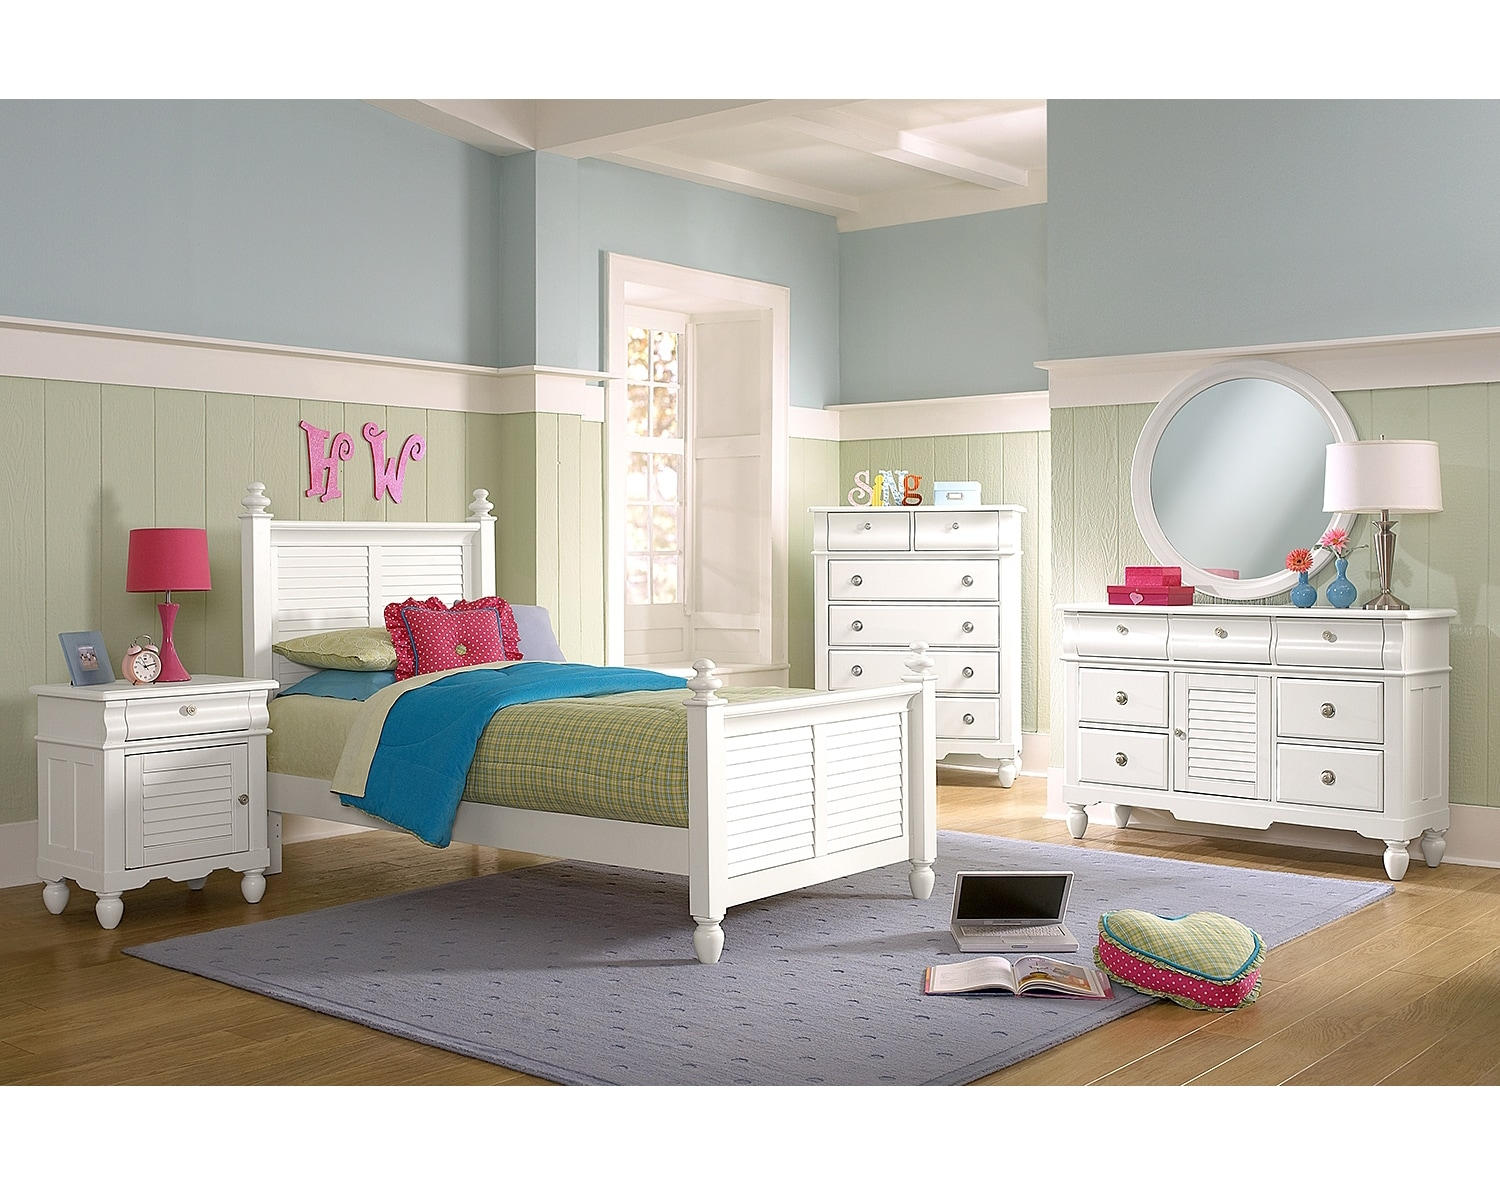 Kids Furniture - The Mayflower White Collection - Twin Bed